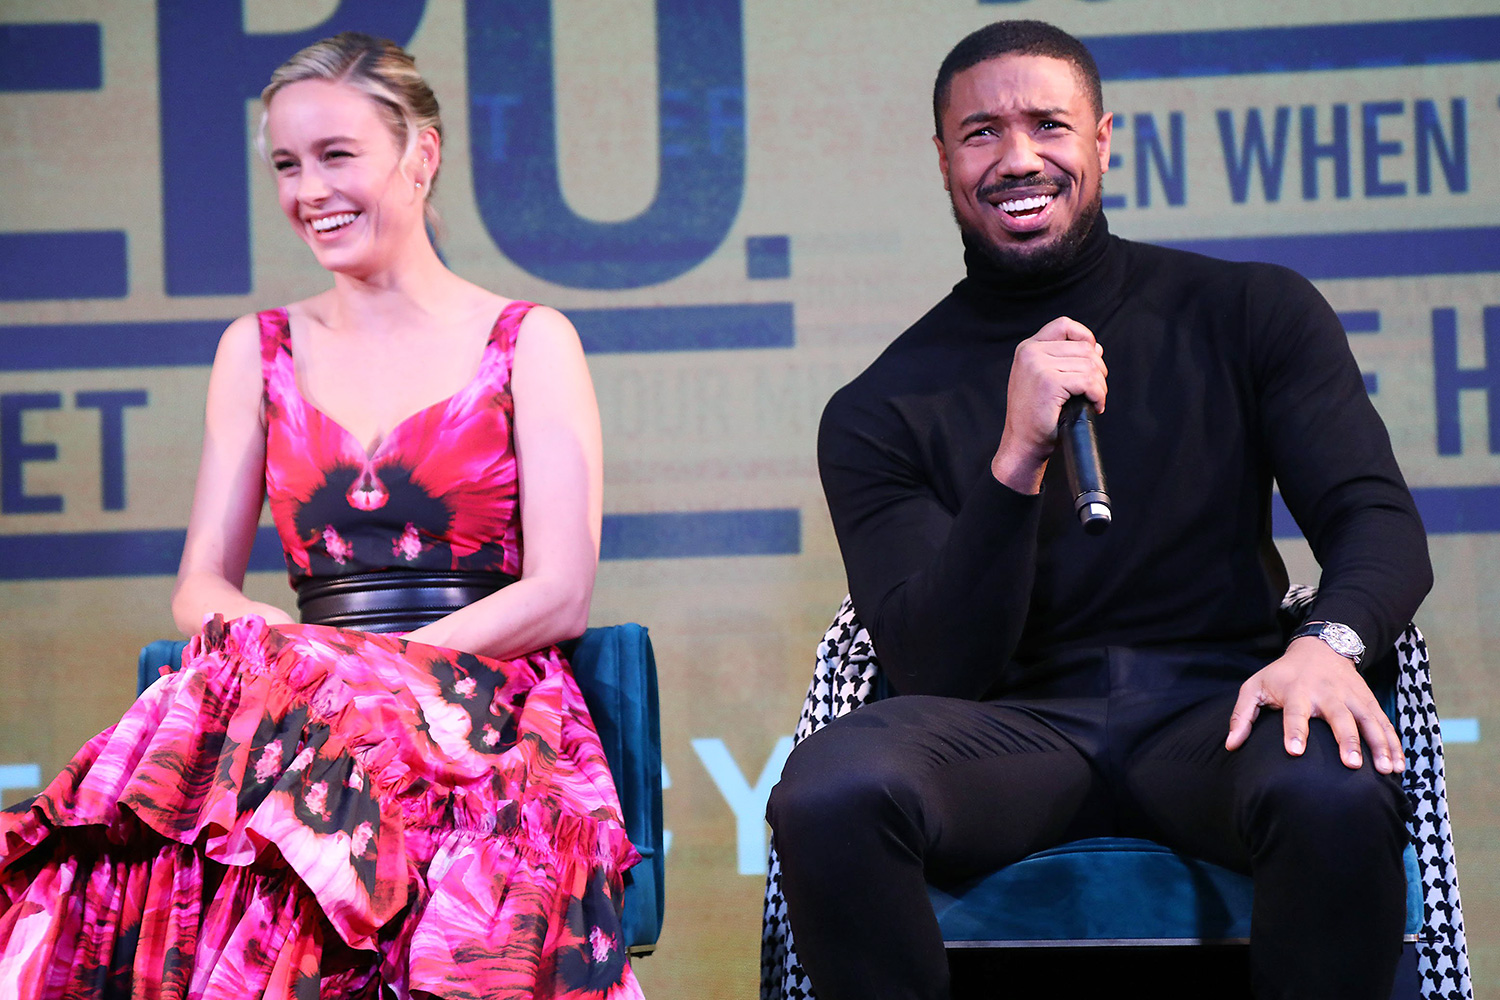 """Brie Larson and Michael B. Jordan A Celebration for """"Just Mercy"""" with a Conversation with the Cast and Writer Bryan Stevenson, New York, USA - 15 Dec 2019"""